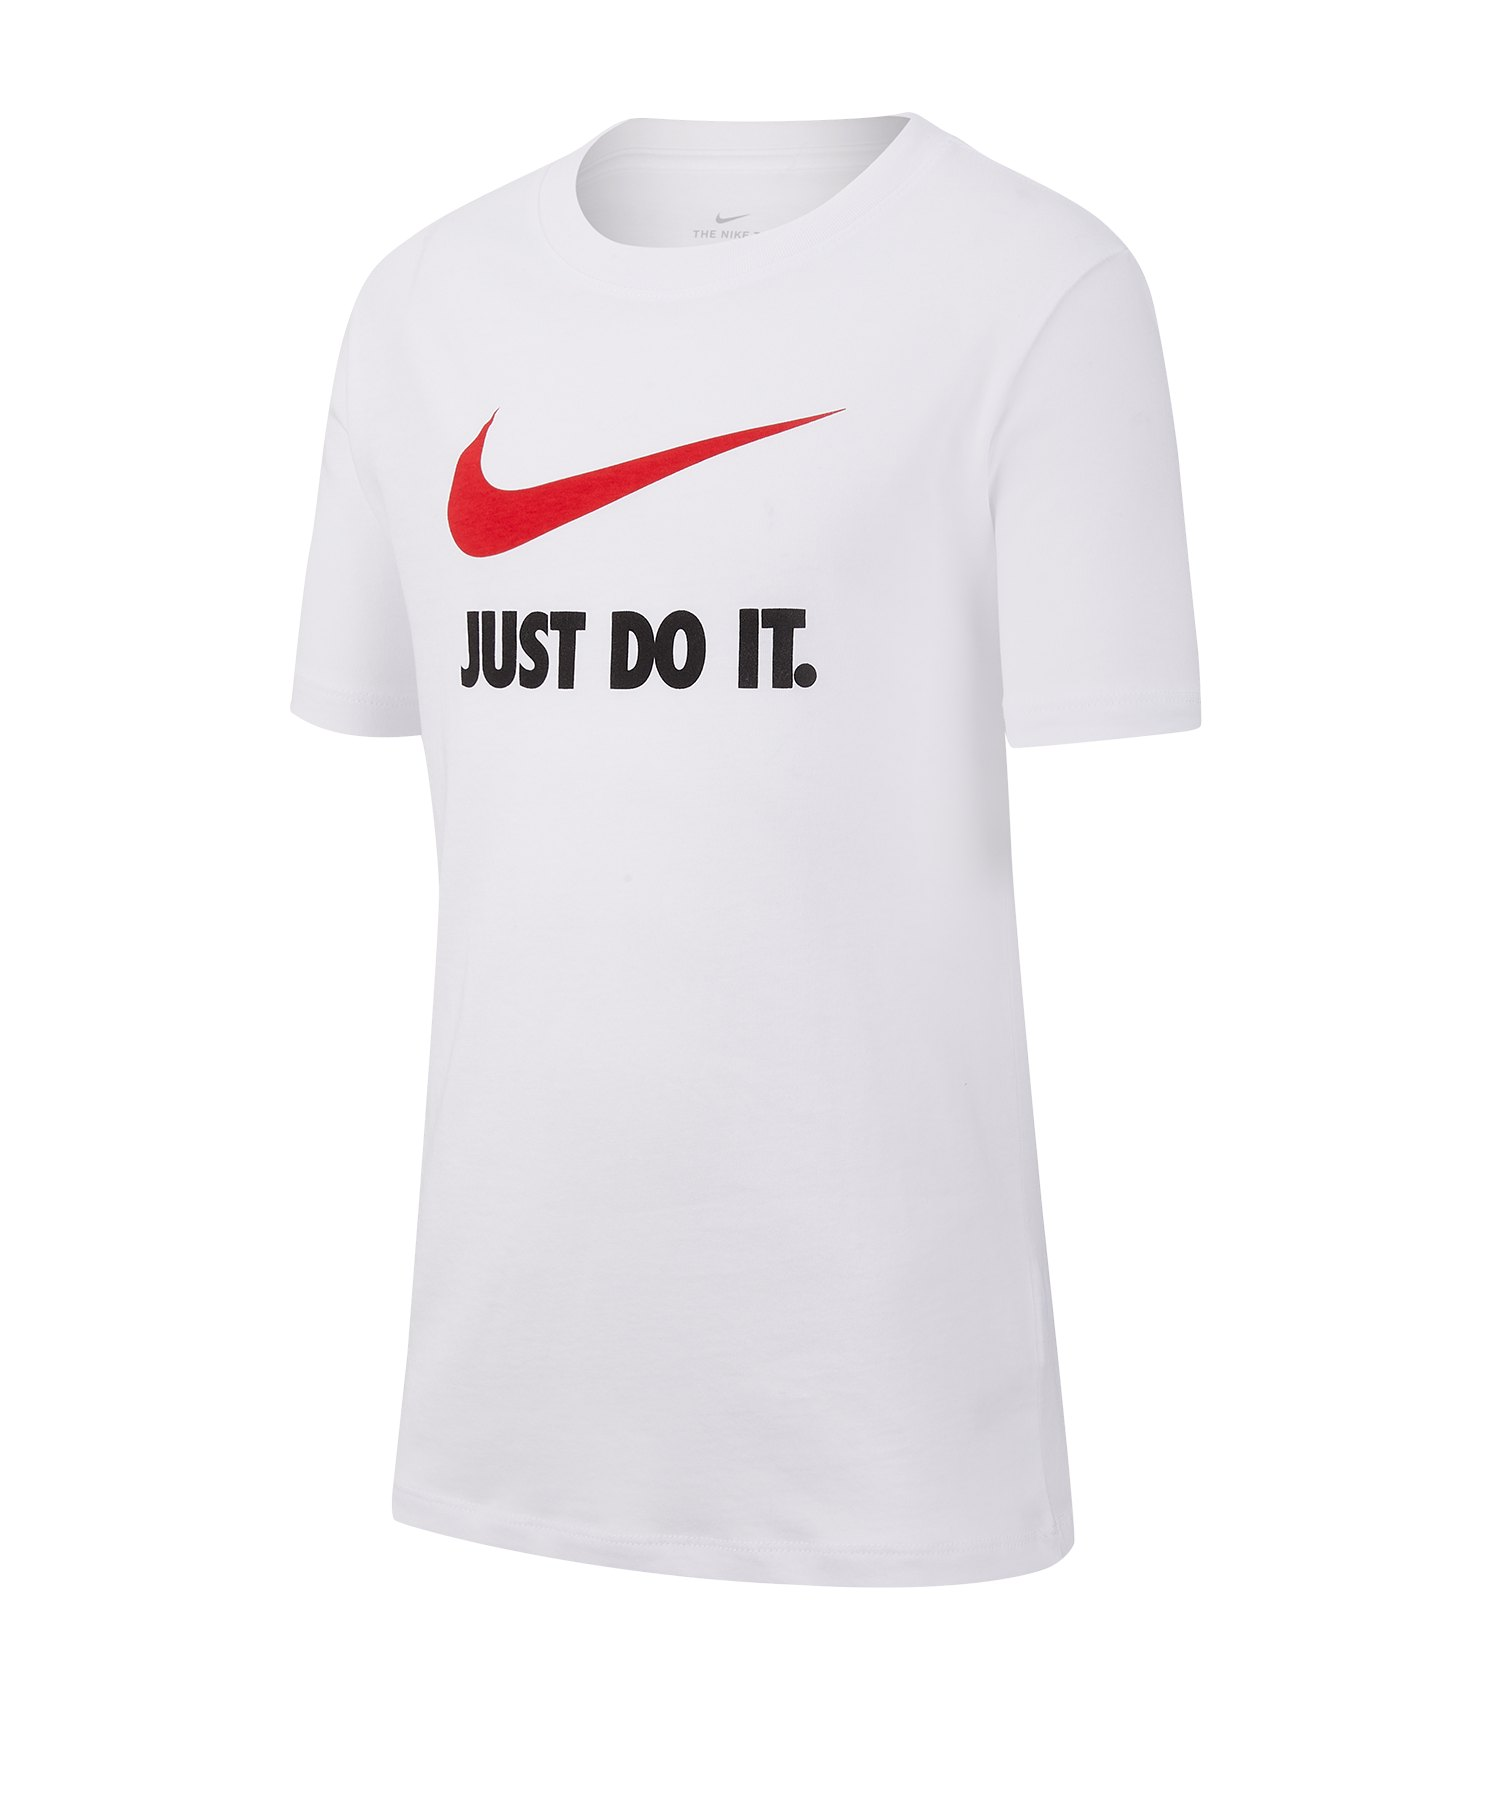 Nike Just Do It Swoosh Tee T-Shirt Kids Weiss F100 - weiss